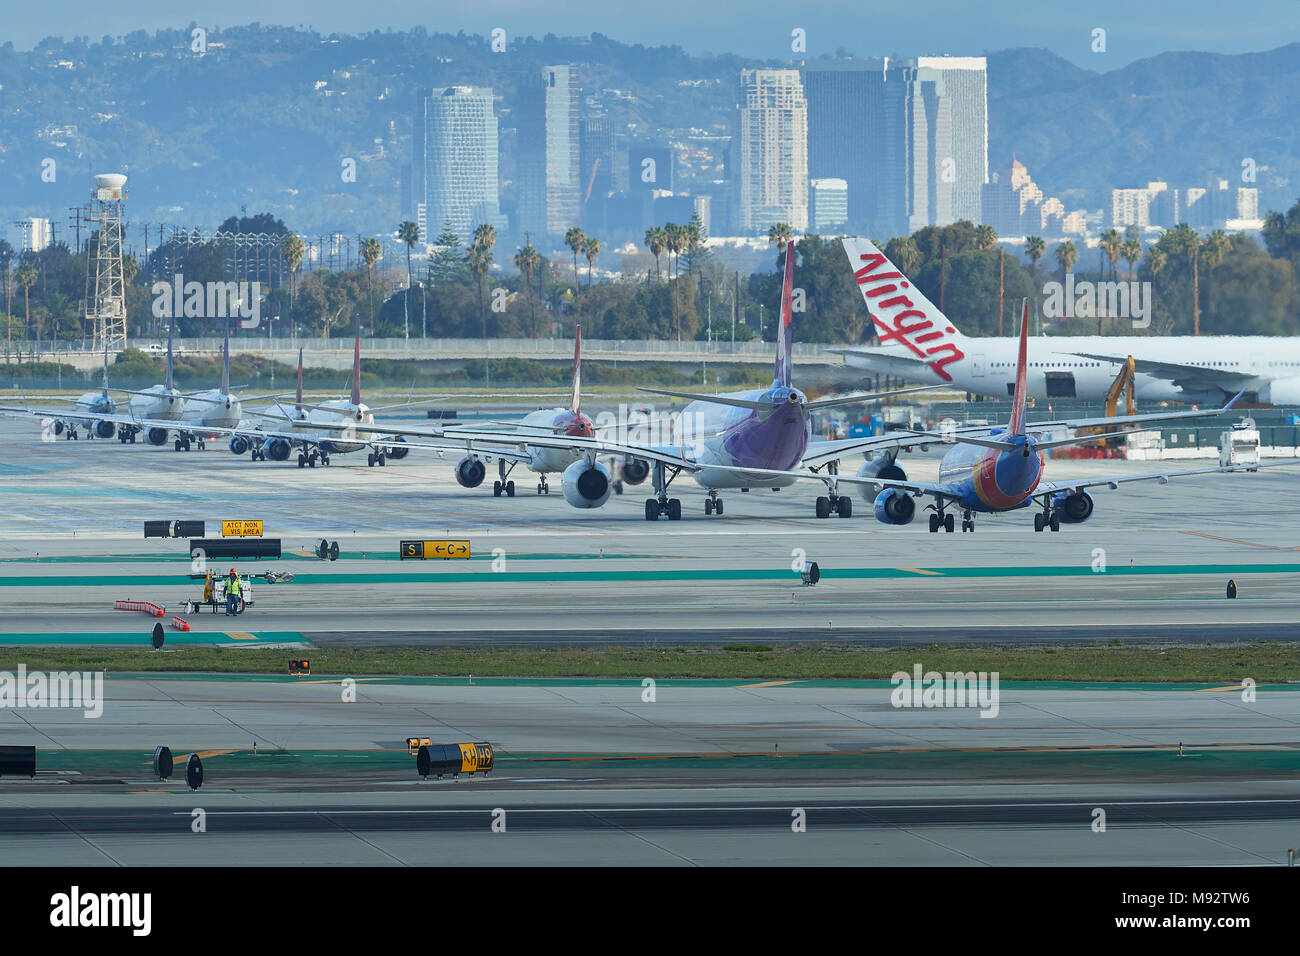 Line Of Waiting Passenger Jets, Awaiting The Departure Of President Trump In Air Force One At Los Angeles International Airport, LAX. 14 March 2018. - Stock Image